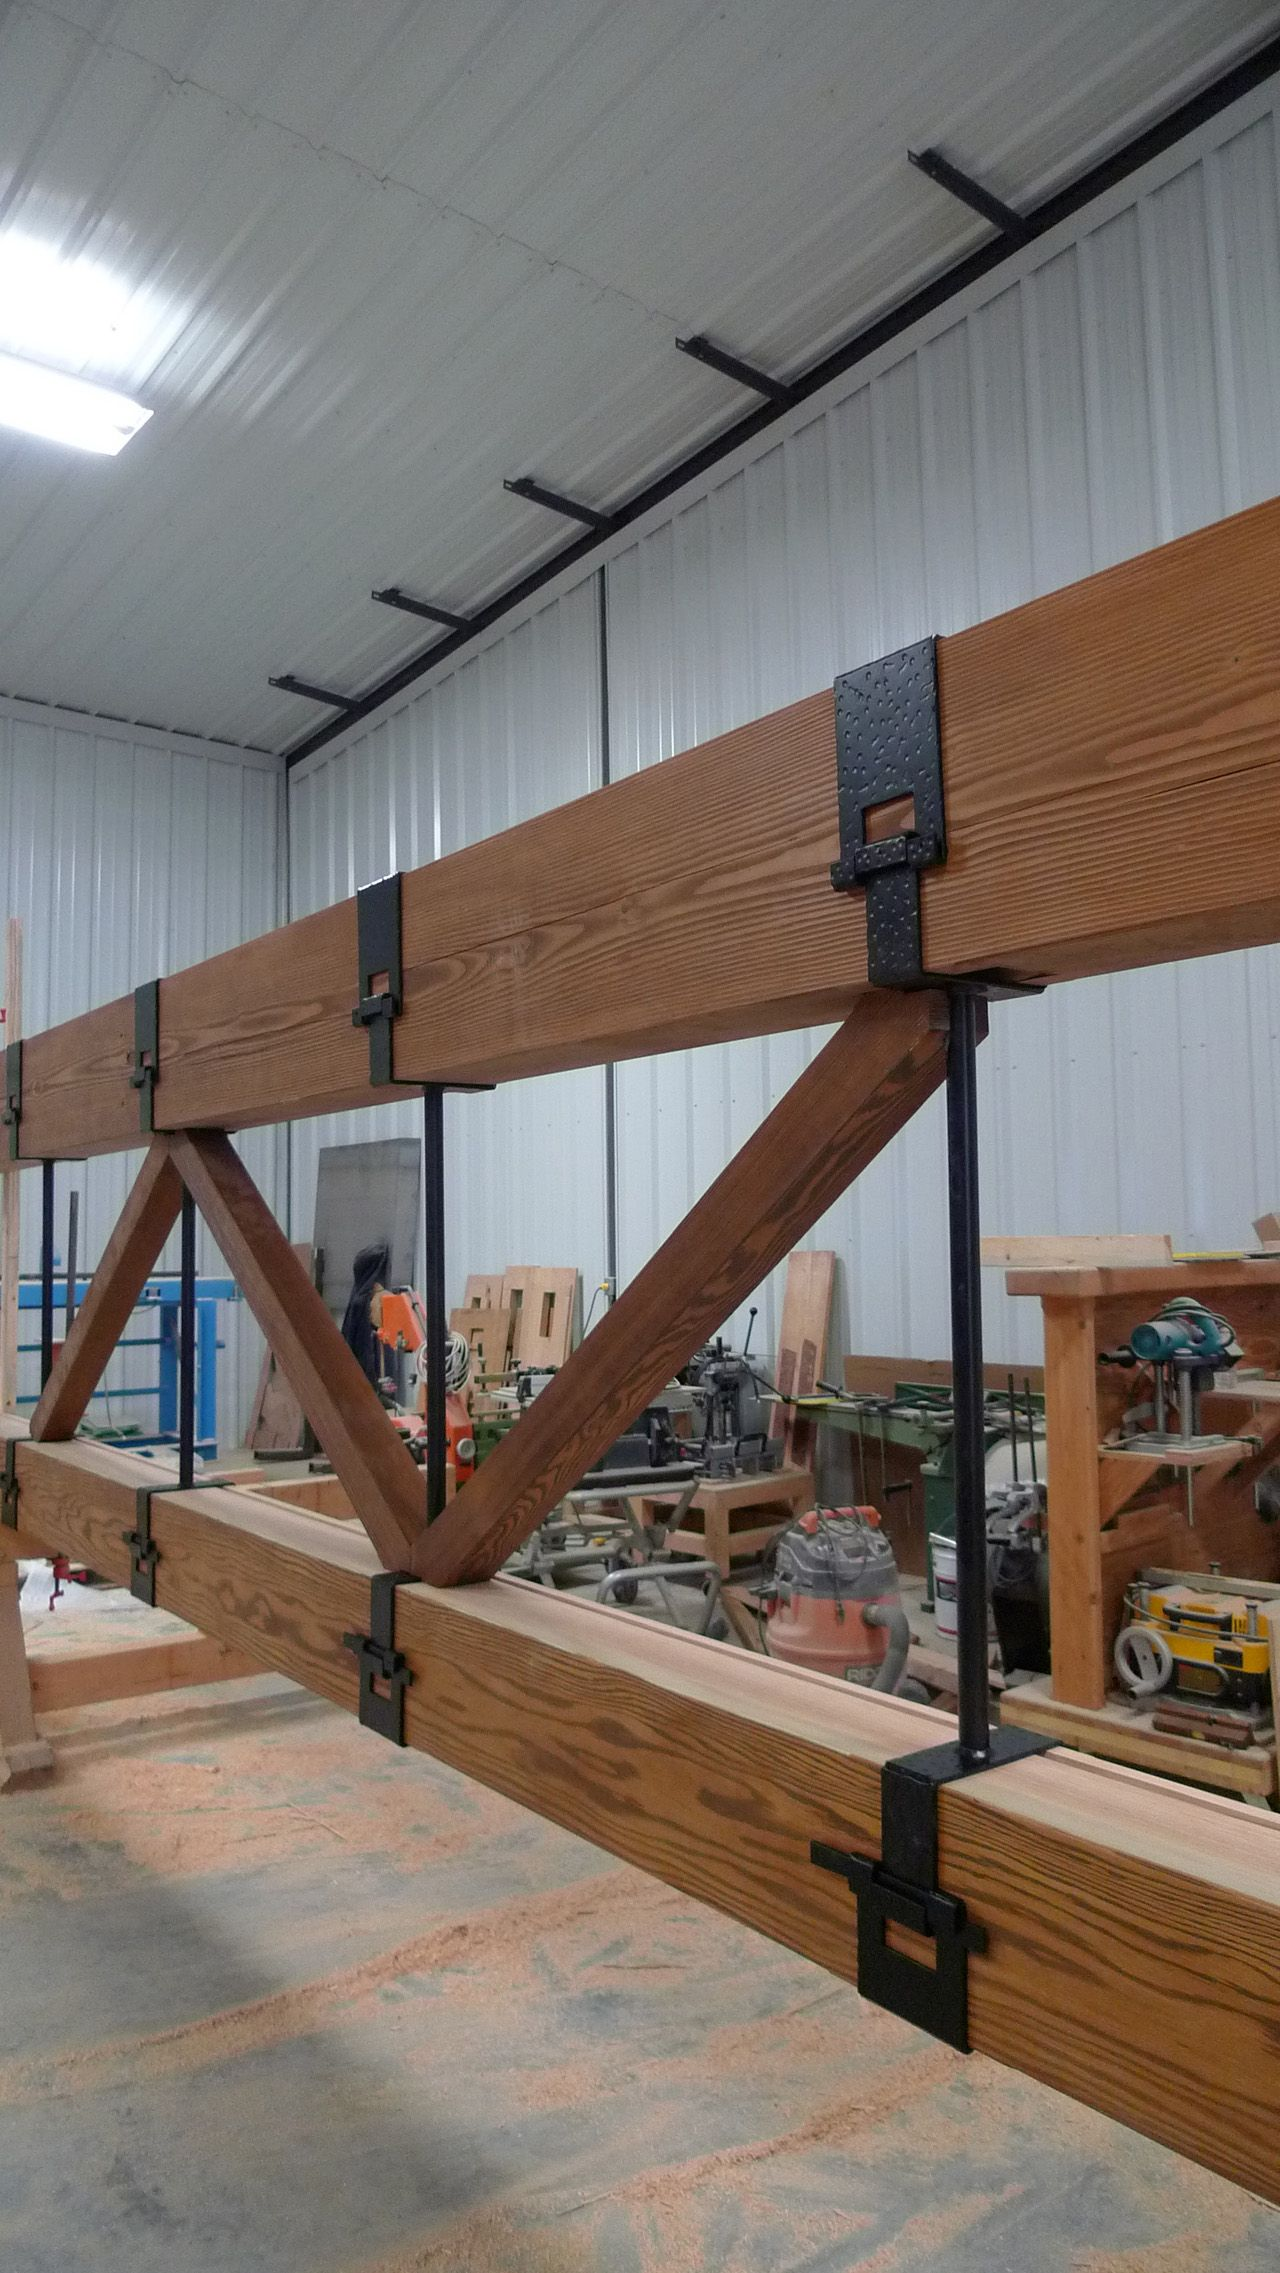 post bridge gambrel bar gainesville n truss home pole joists for roof queen how metal to wood railroad used sheds structure decor menards barns build packages premade plans drawing wooden homemade kits barn design steel model prebuilt diy pipe trusses portable garage fl garages